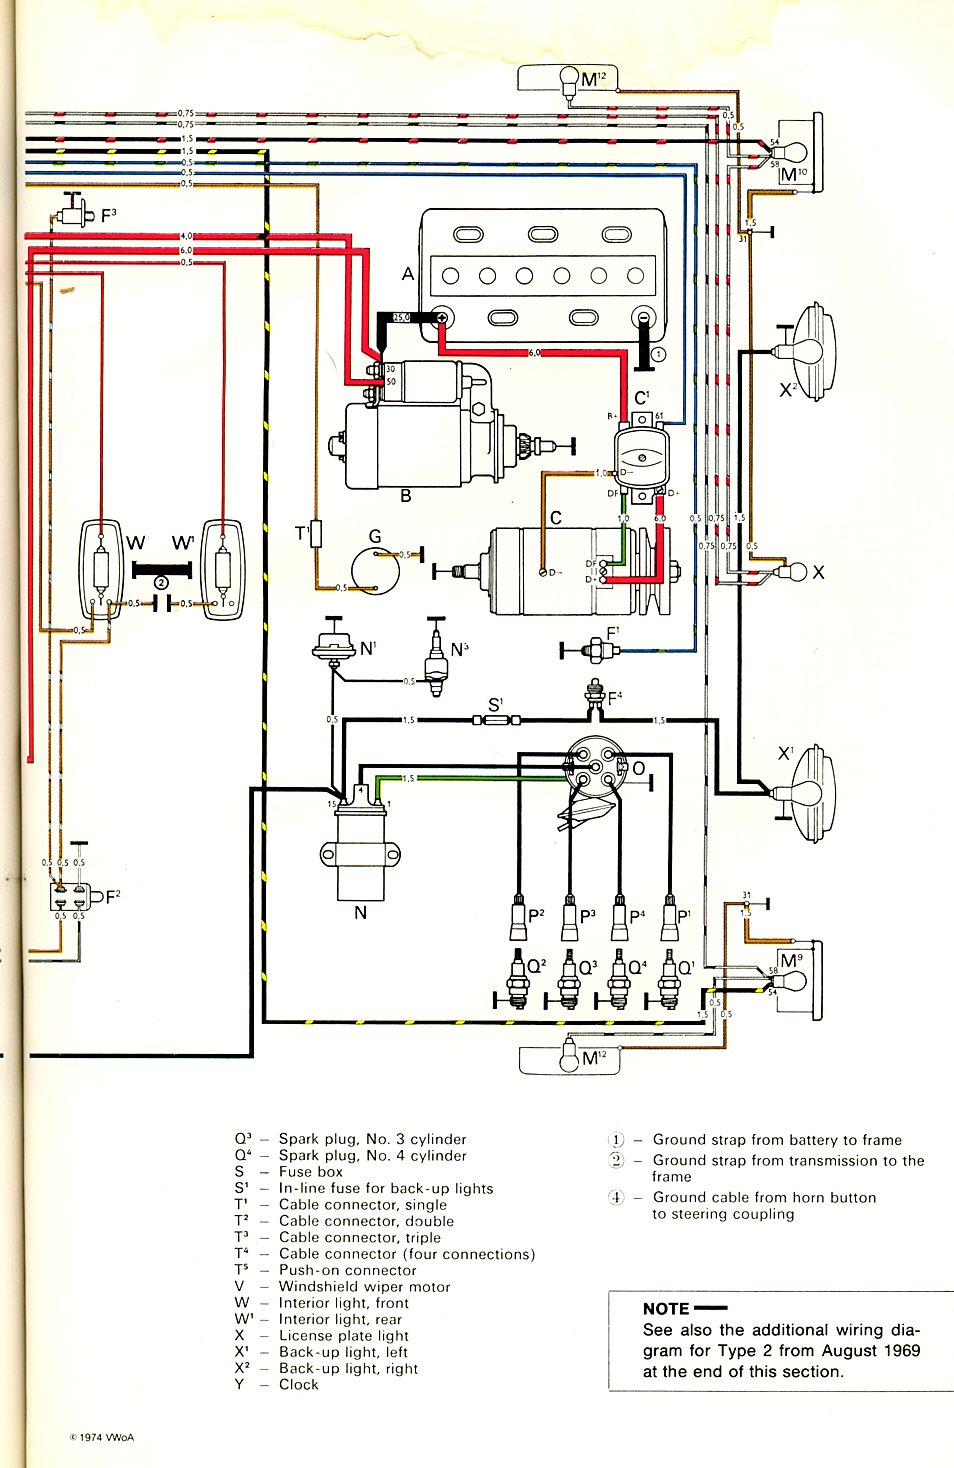 Type 2 Wiring Diagrams 1971 Chevy Wiper Diagram